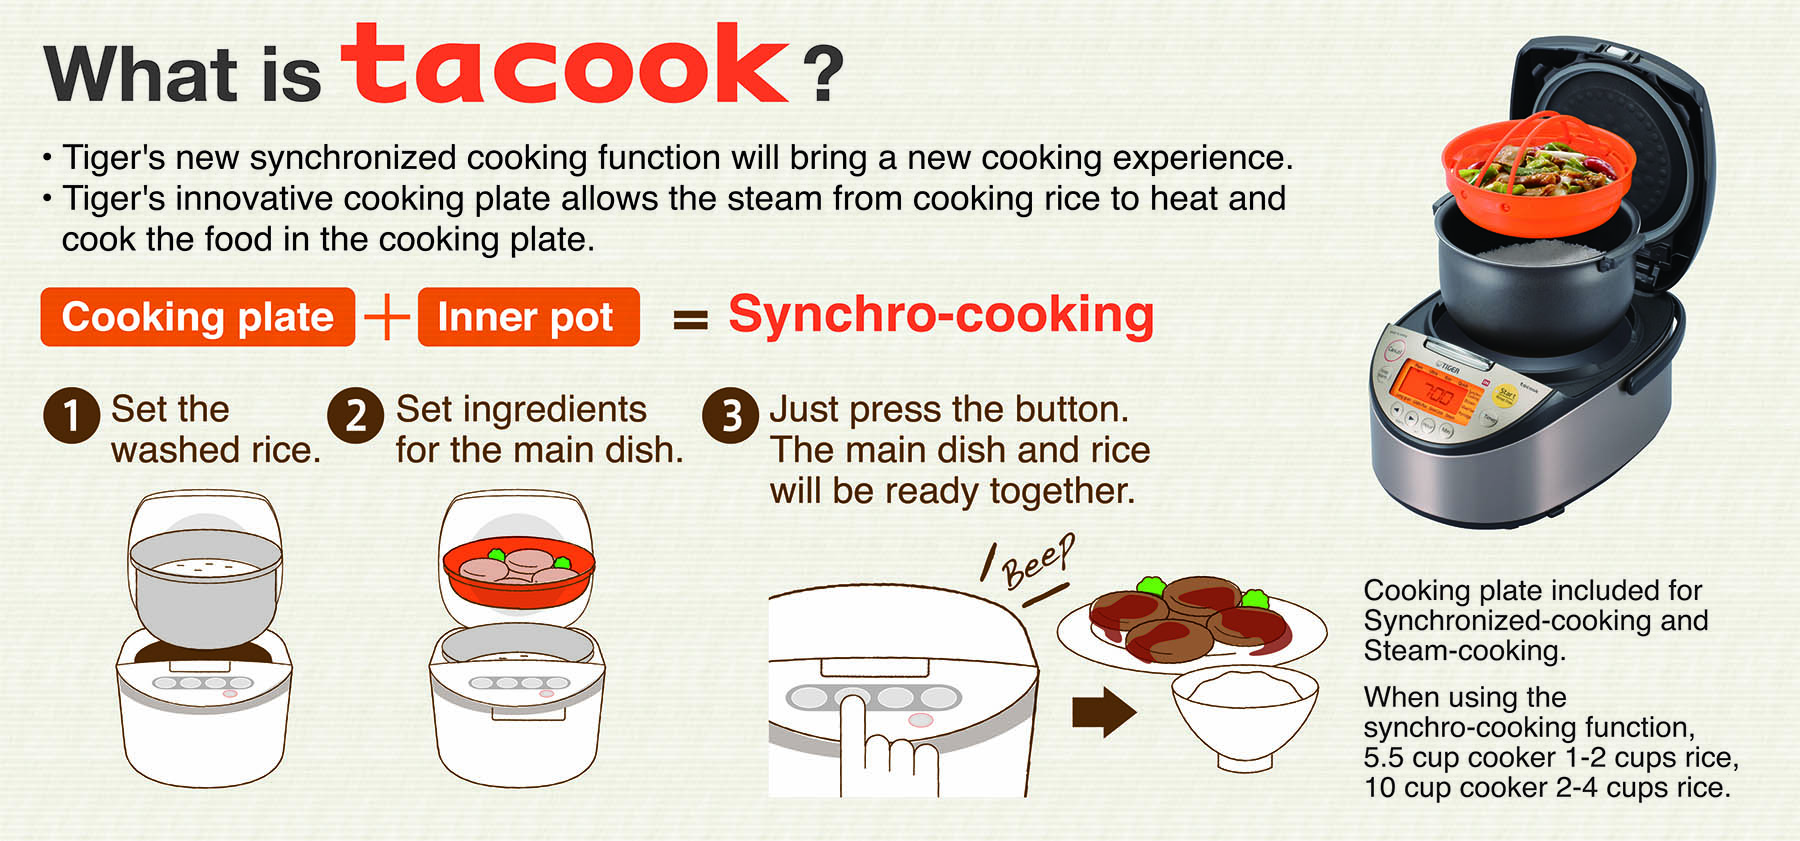 Induction Heating Rice Cooker Jkt S Tiger Philippines Website Wiring Diagram The Cooking Plate Is Specially Designed So Flavors From Do Not Affect Flavor Or Texture Of